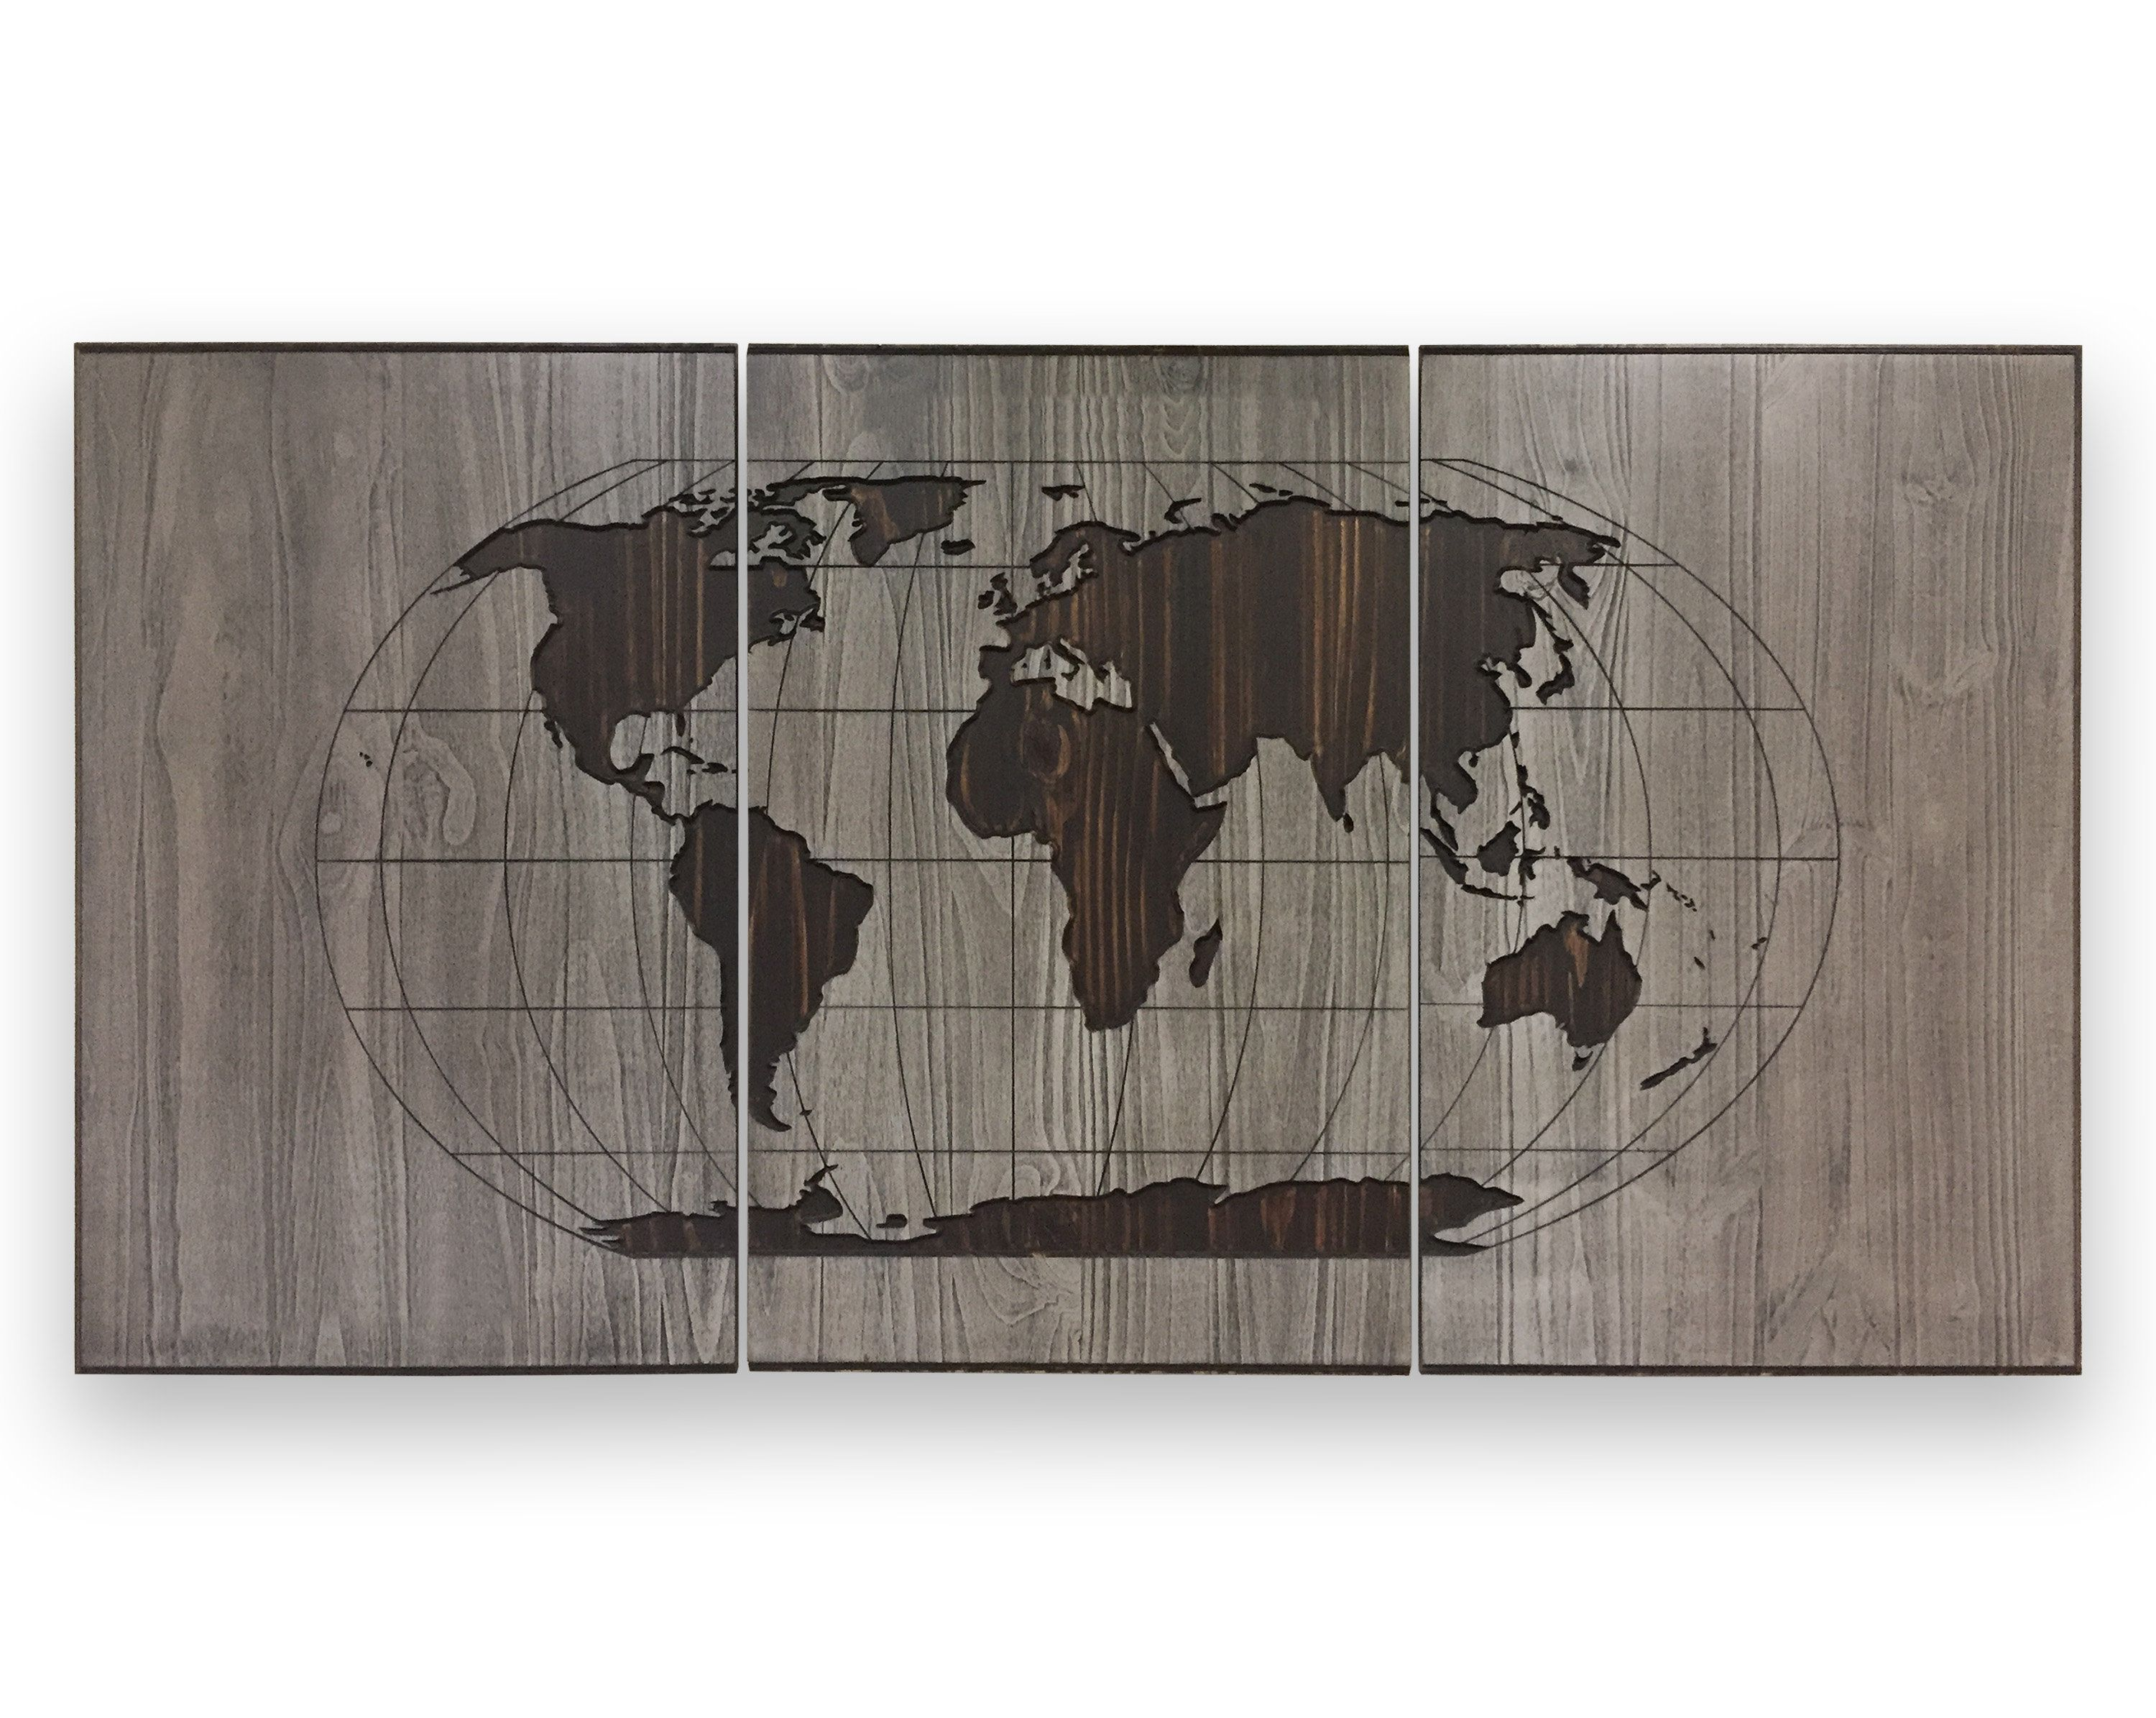 Large world map art grid map globe map with continents latitude large world map art grid map globe map with continents latitude longitude lines push pin map wood wall art print canvas poster gumiabroncs Choice Image